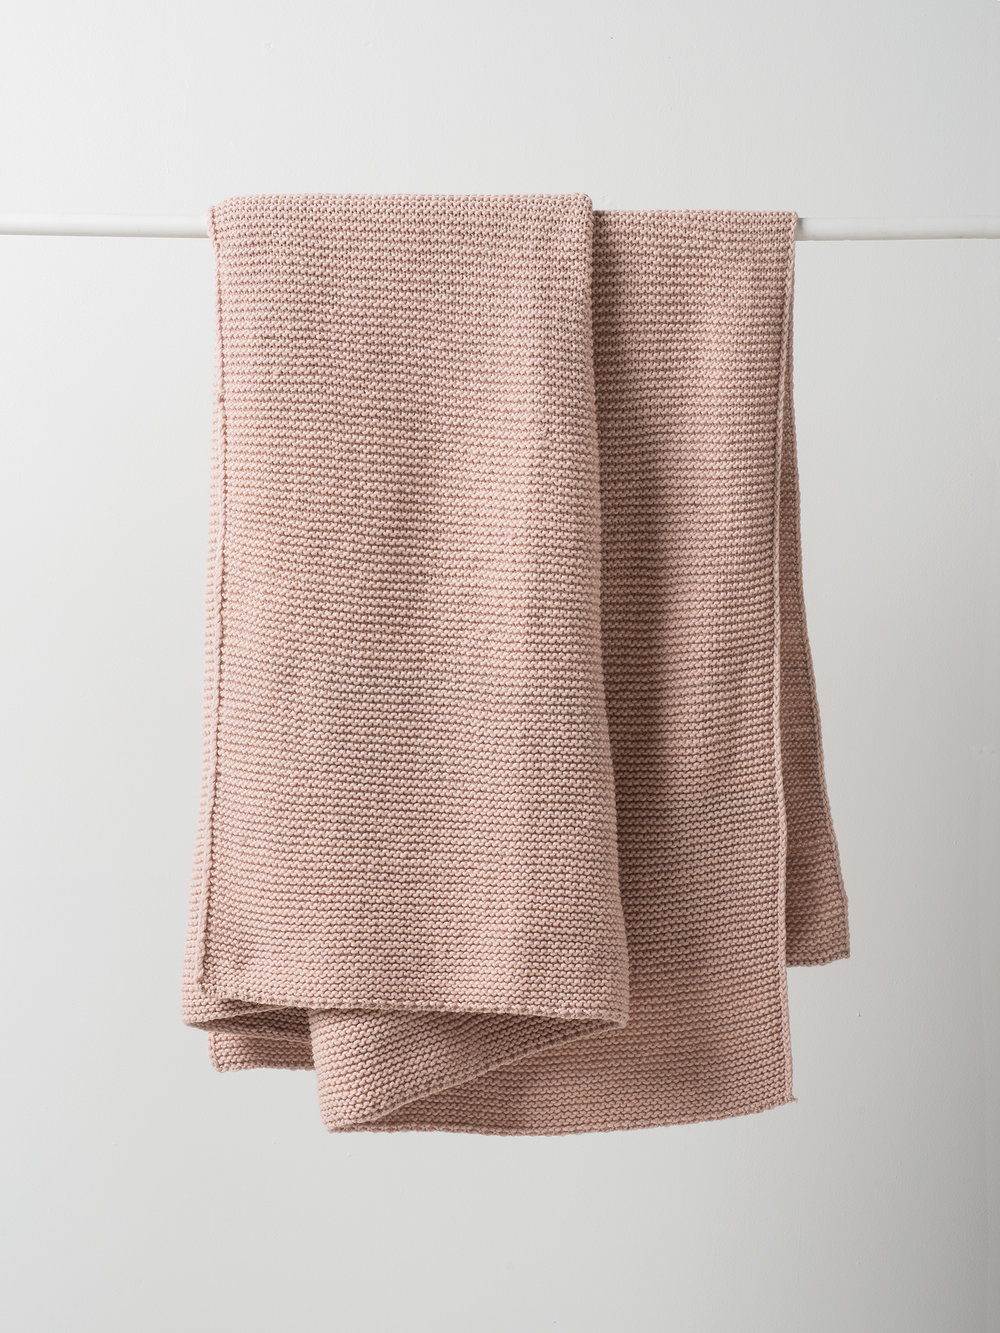 Purl Knit Wool Throw $239.00